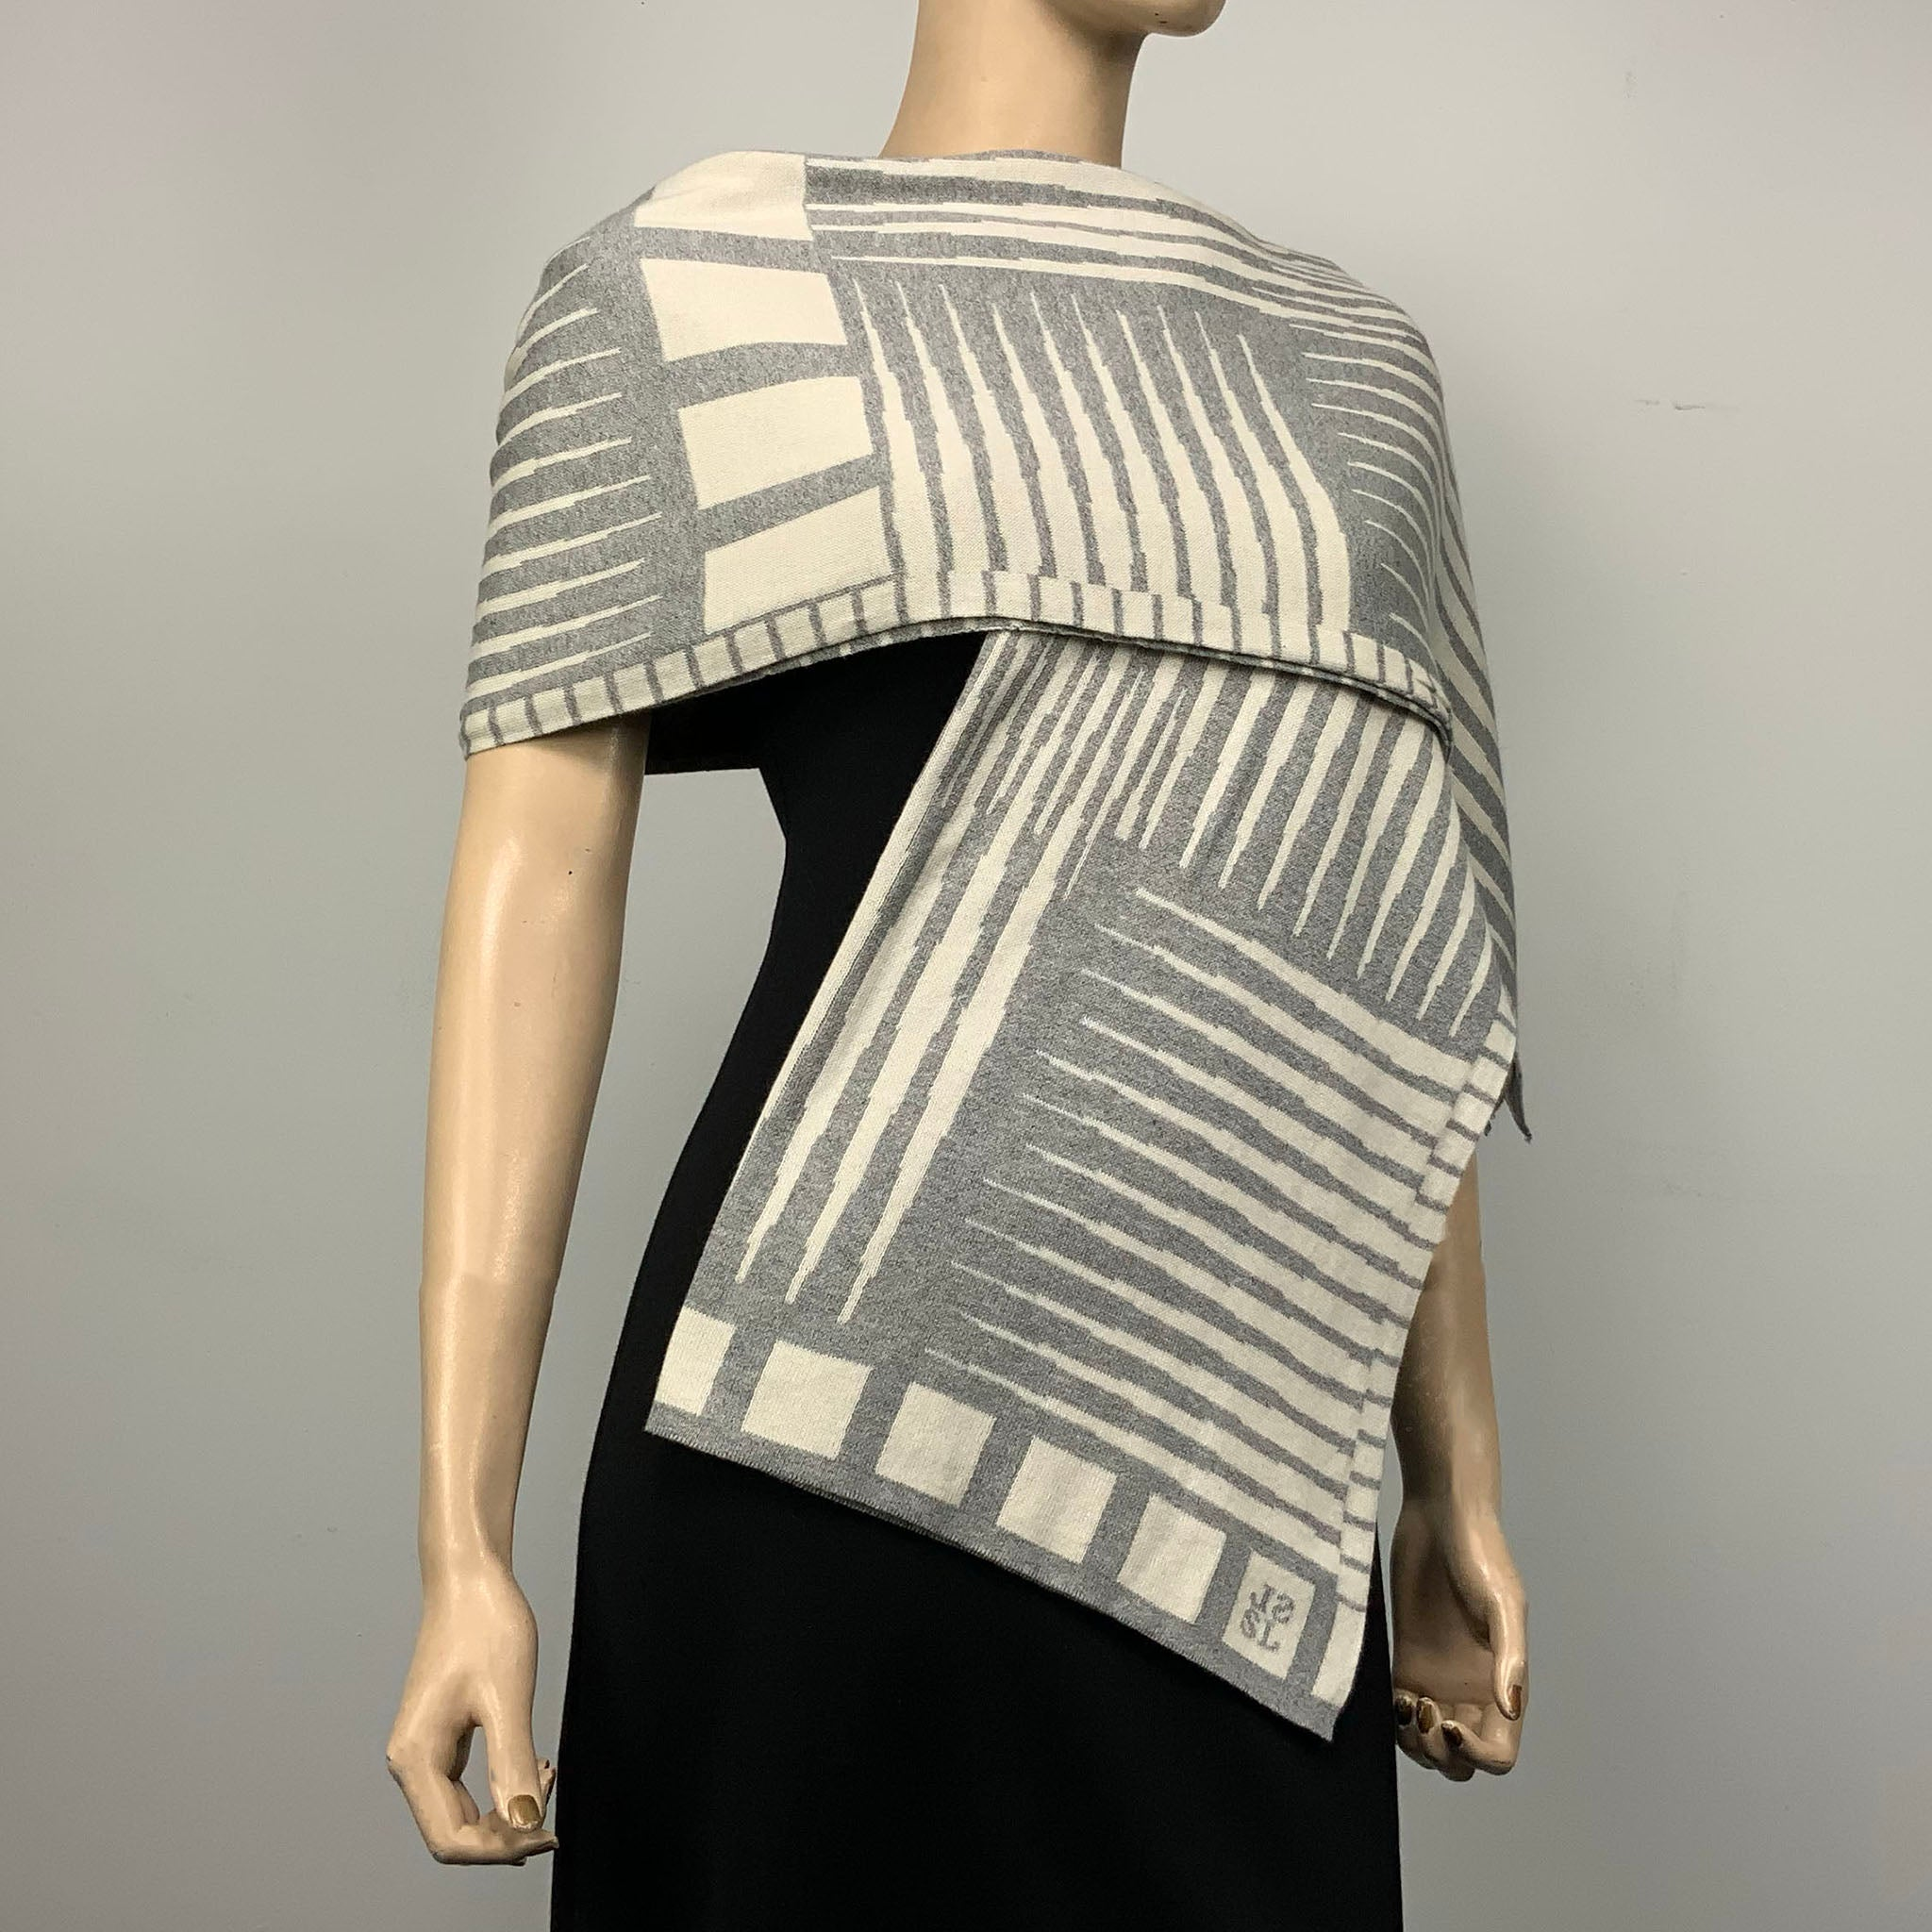 Khalo: cream/light grey Shawl Scarf Wrap